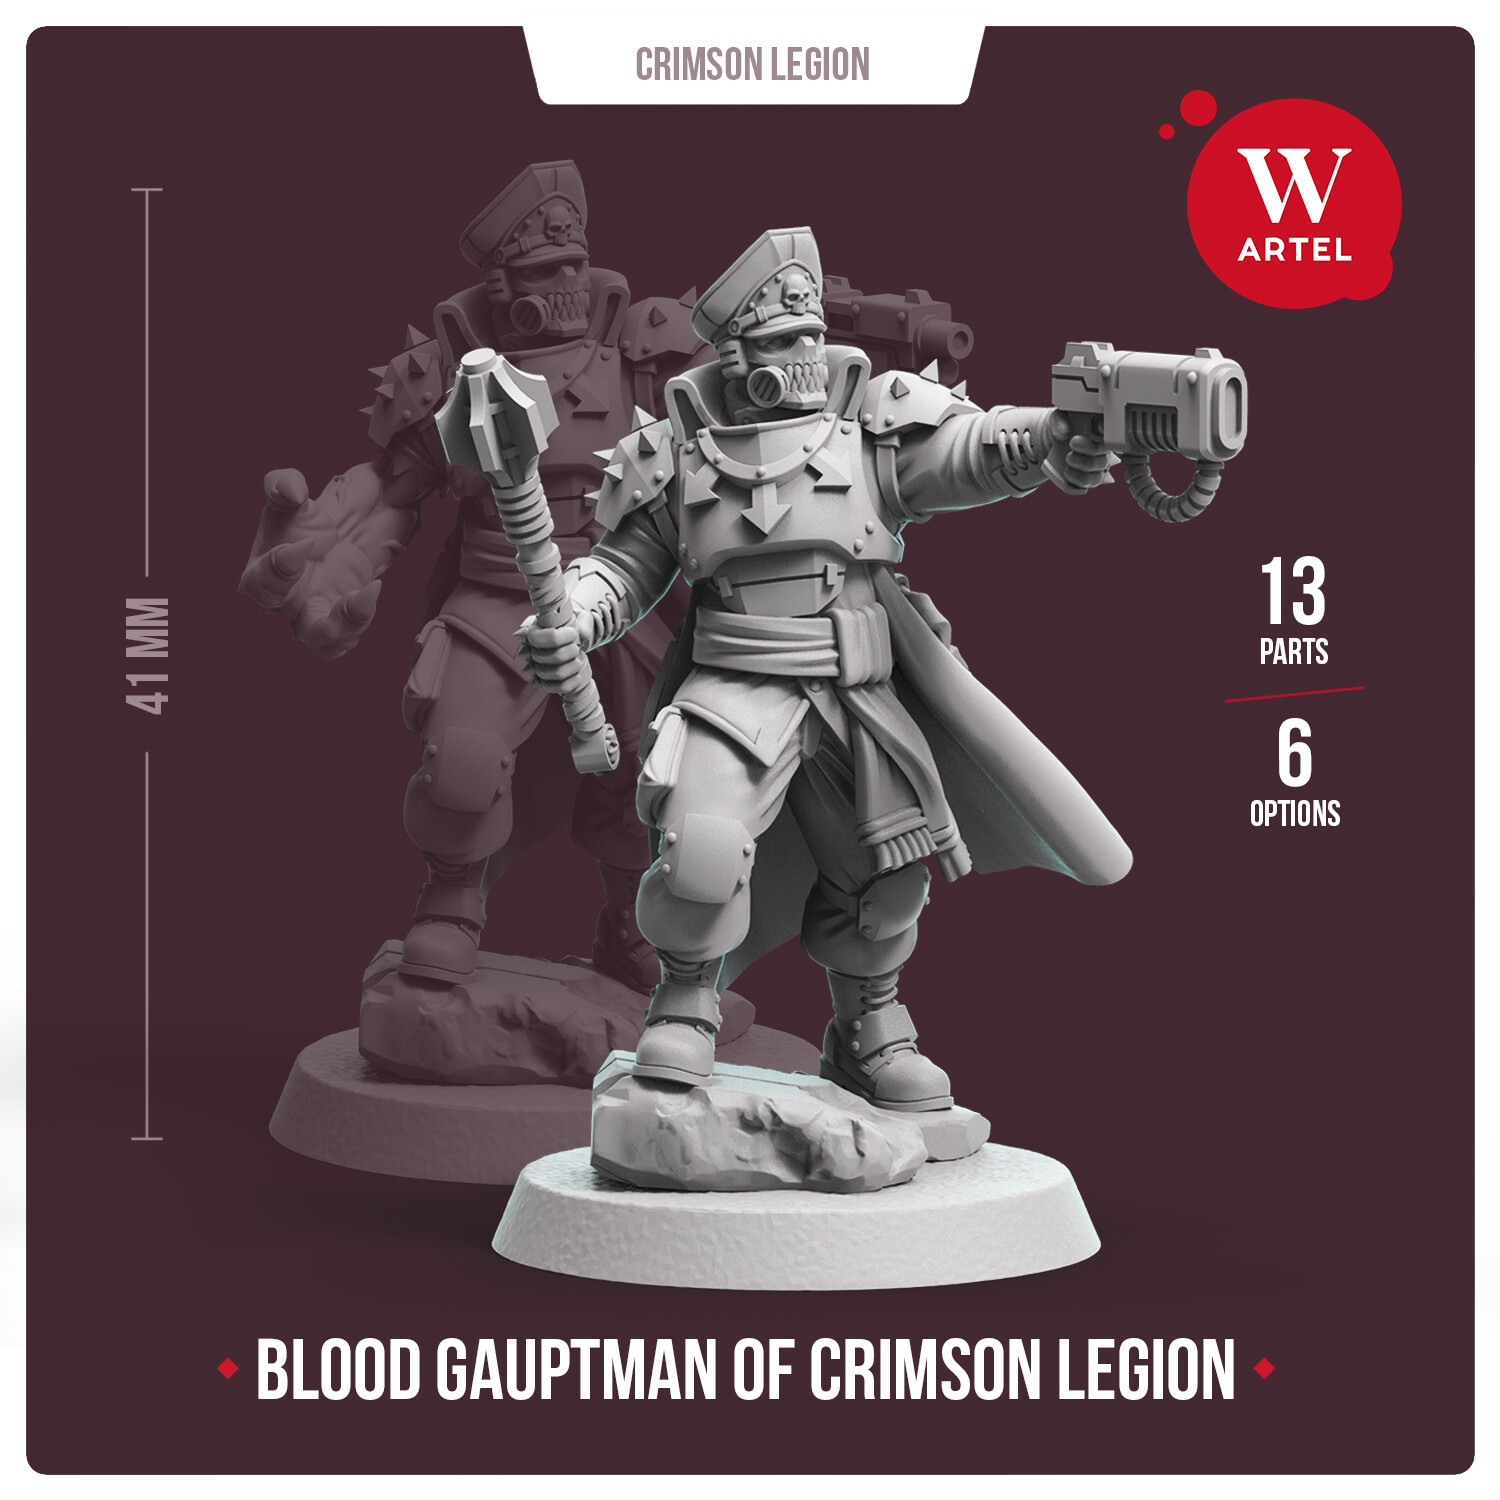 Blood Gauptman of Crimson Legion